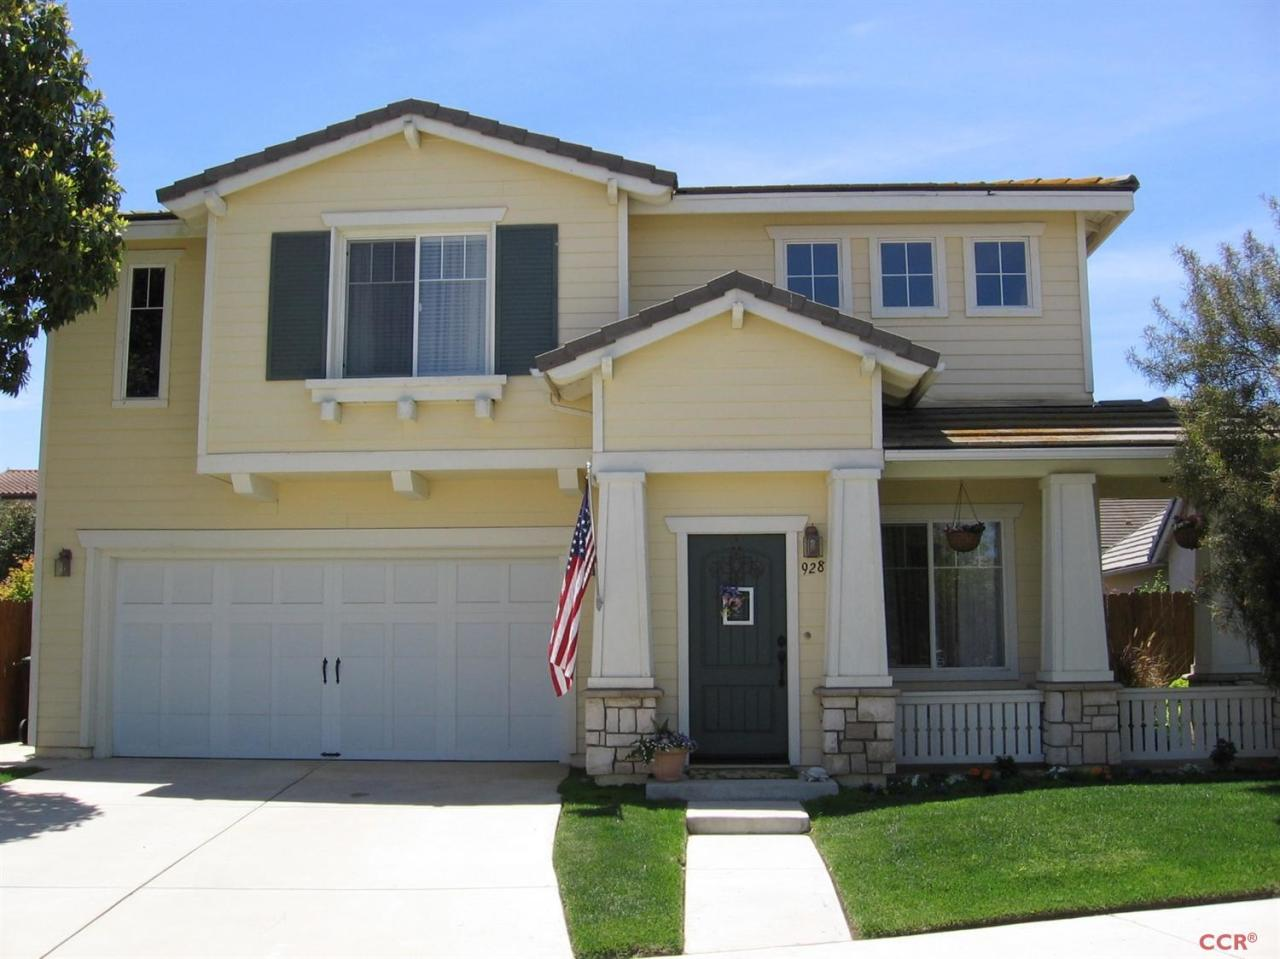 One of Santa Maria 3 Bedroom Homes for Sale at 928  Sloan Terrace